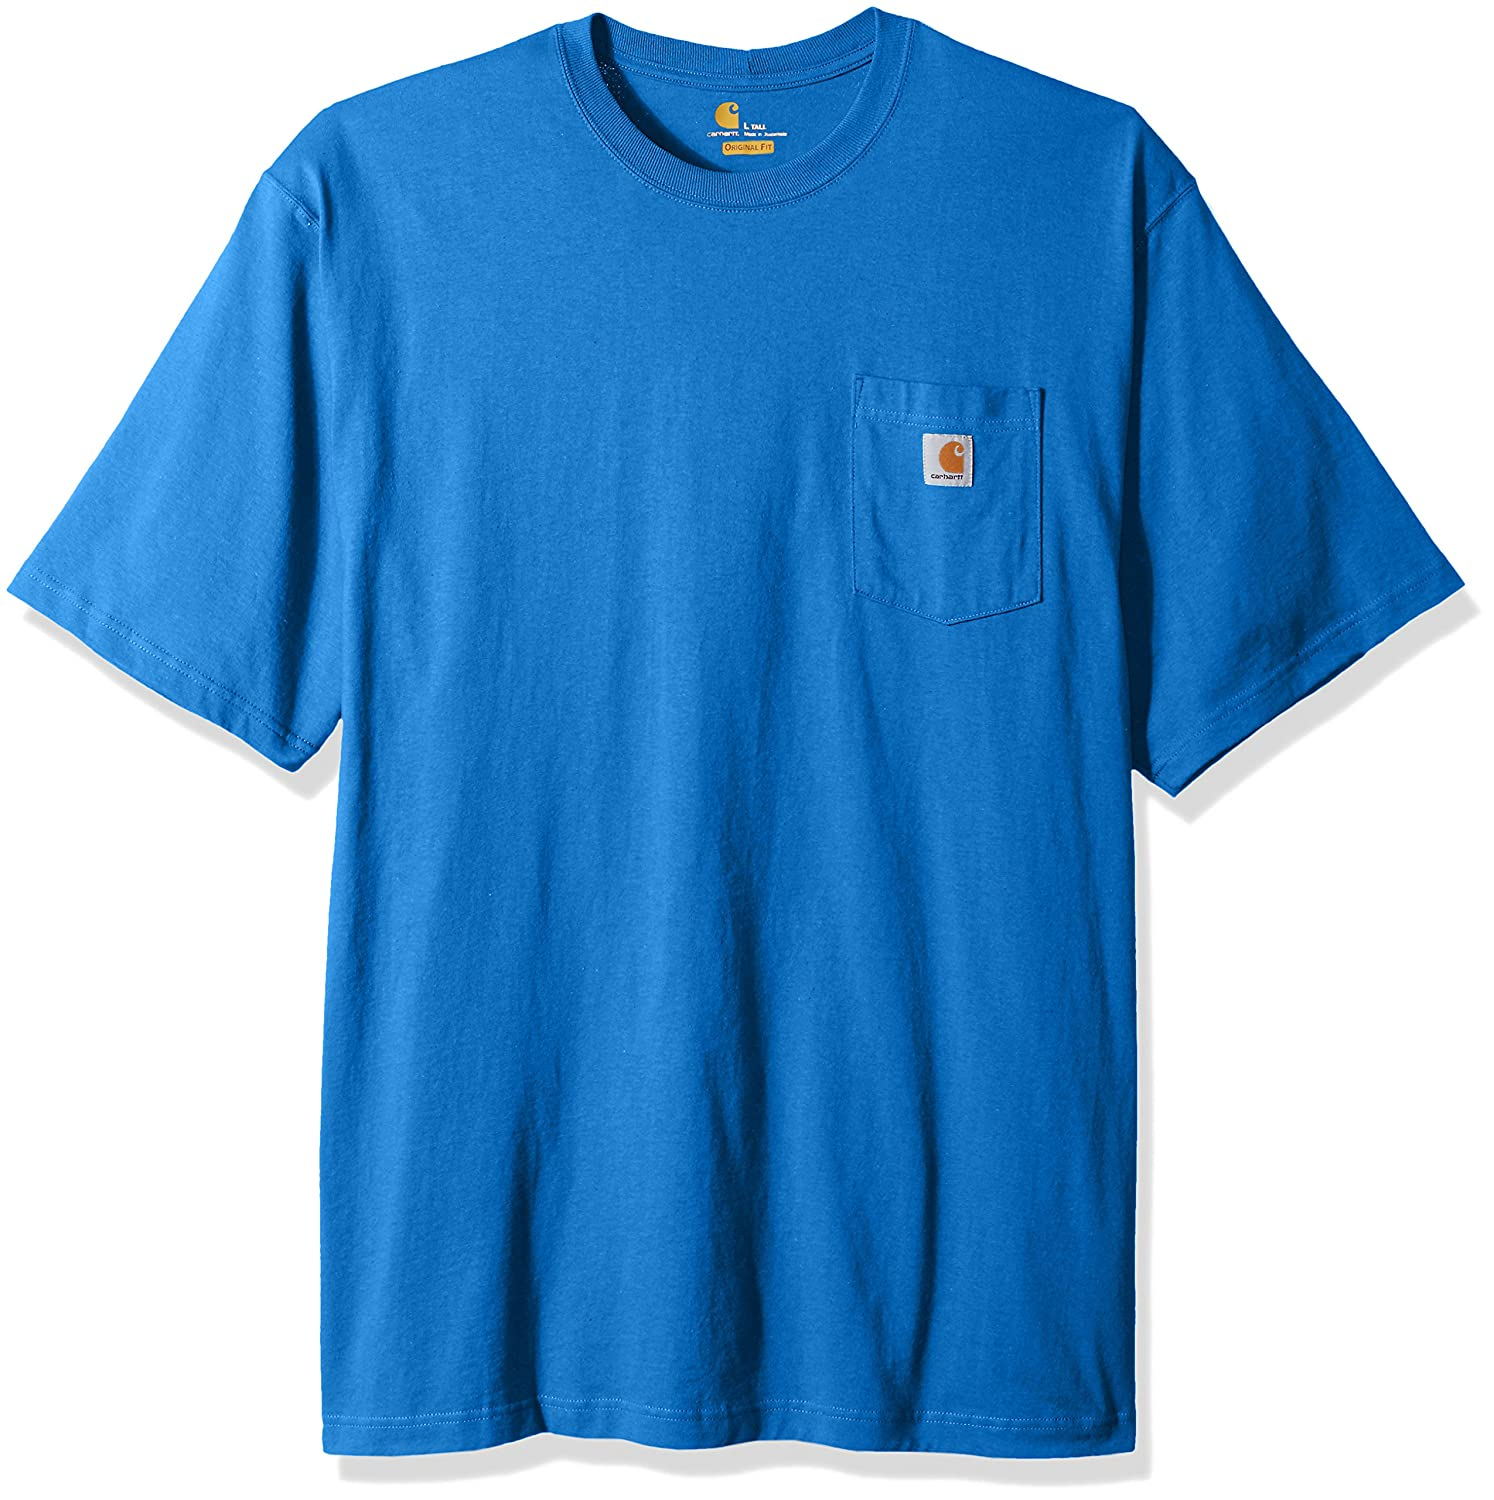 Carhartt SHIRT メンズ B06WLH29P1 Large Tall|Cool Blue Heather Cool Blue Heather Large Tall